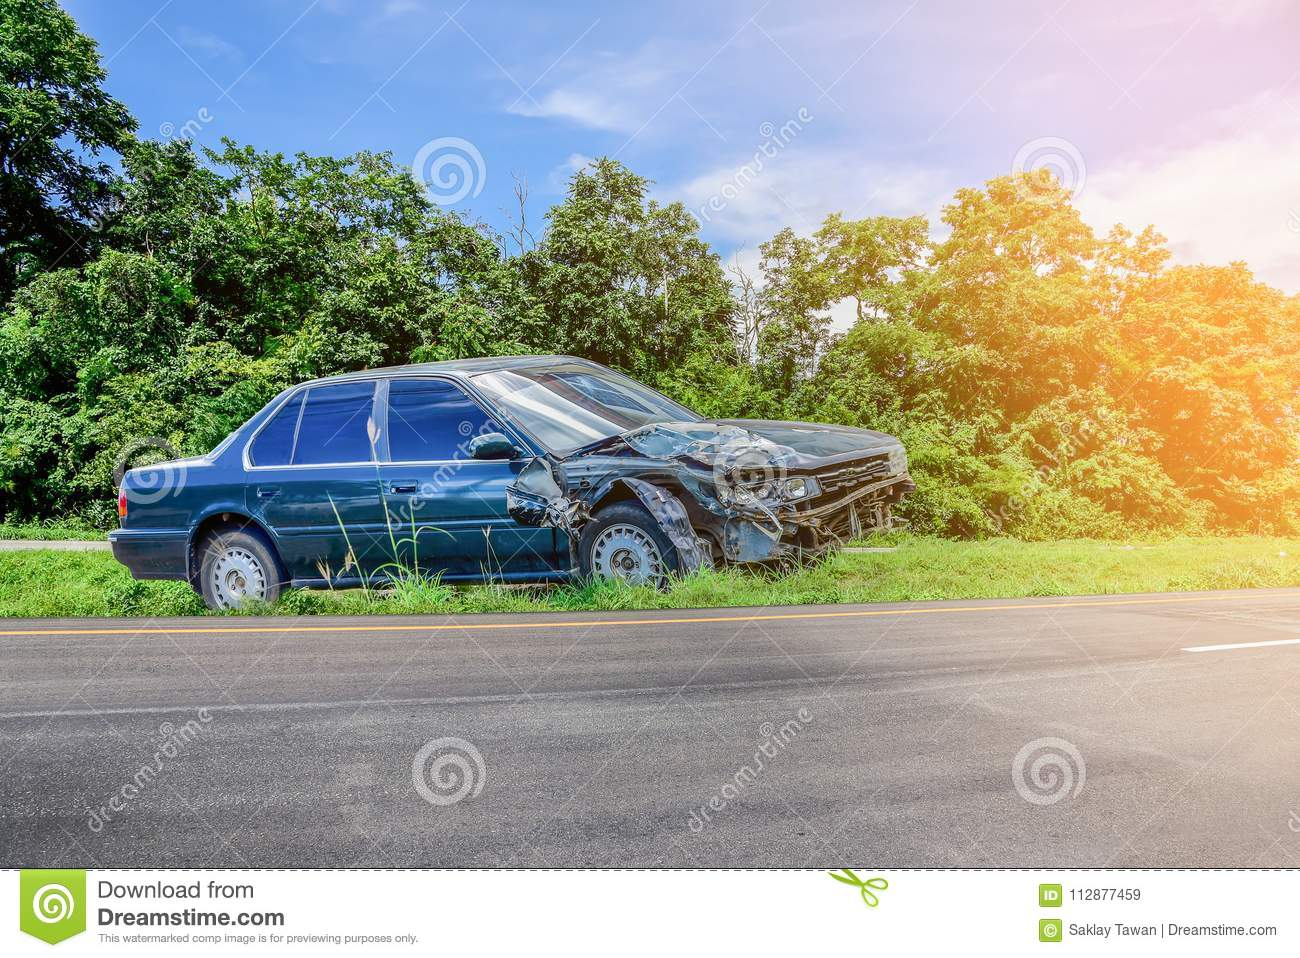 car accident and car crash on the road stock image image of